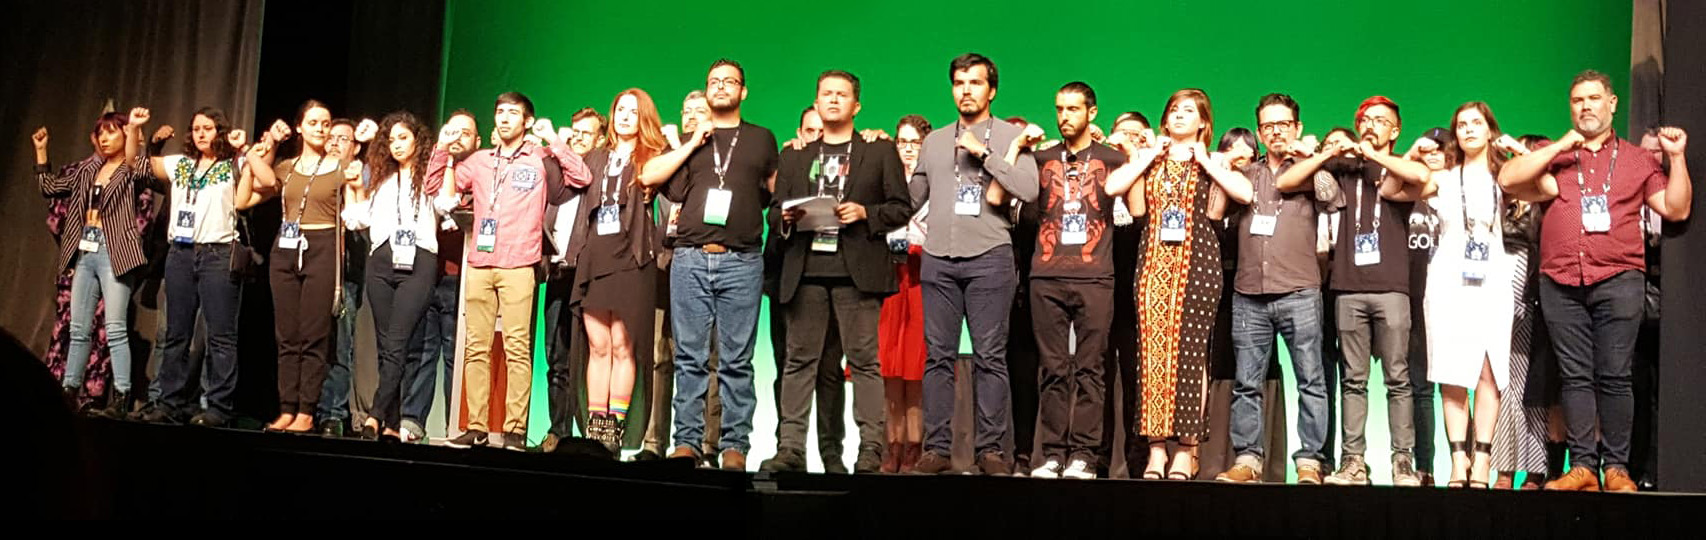 Full stage of Mexicanx Initiative members Xing up during the opening ceremonies at Worldcon 76 (Sent by: John Picacio; Photo credit: Debi Chowdhury)